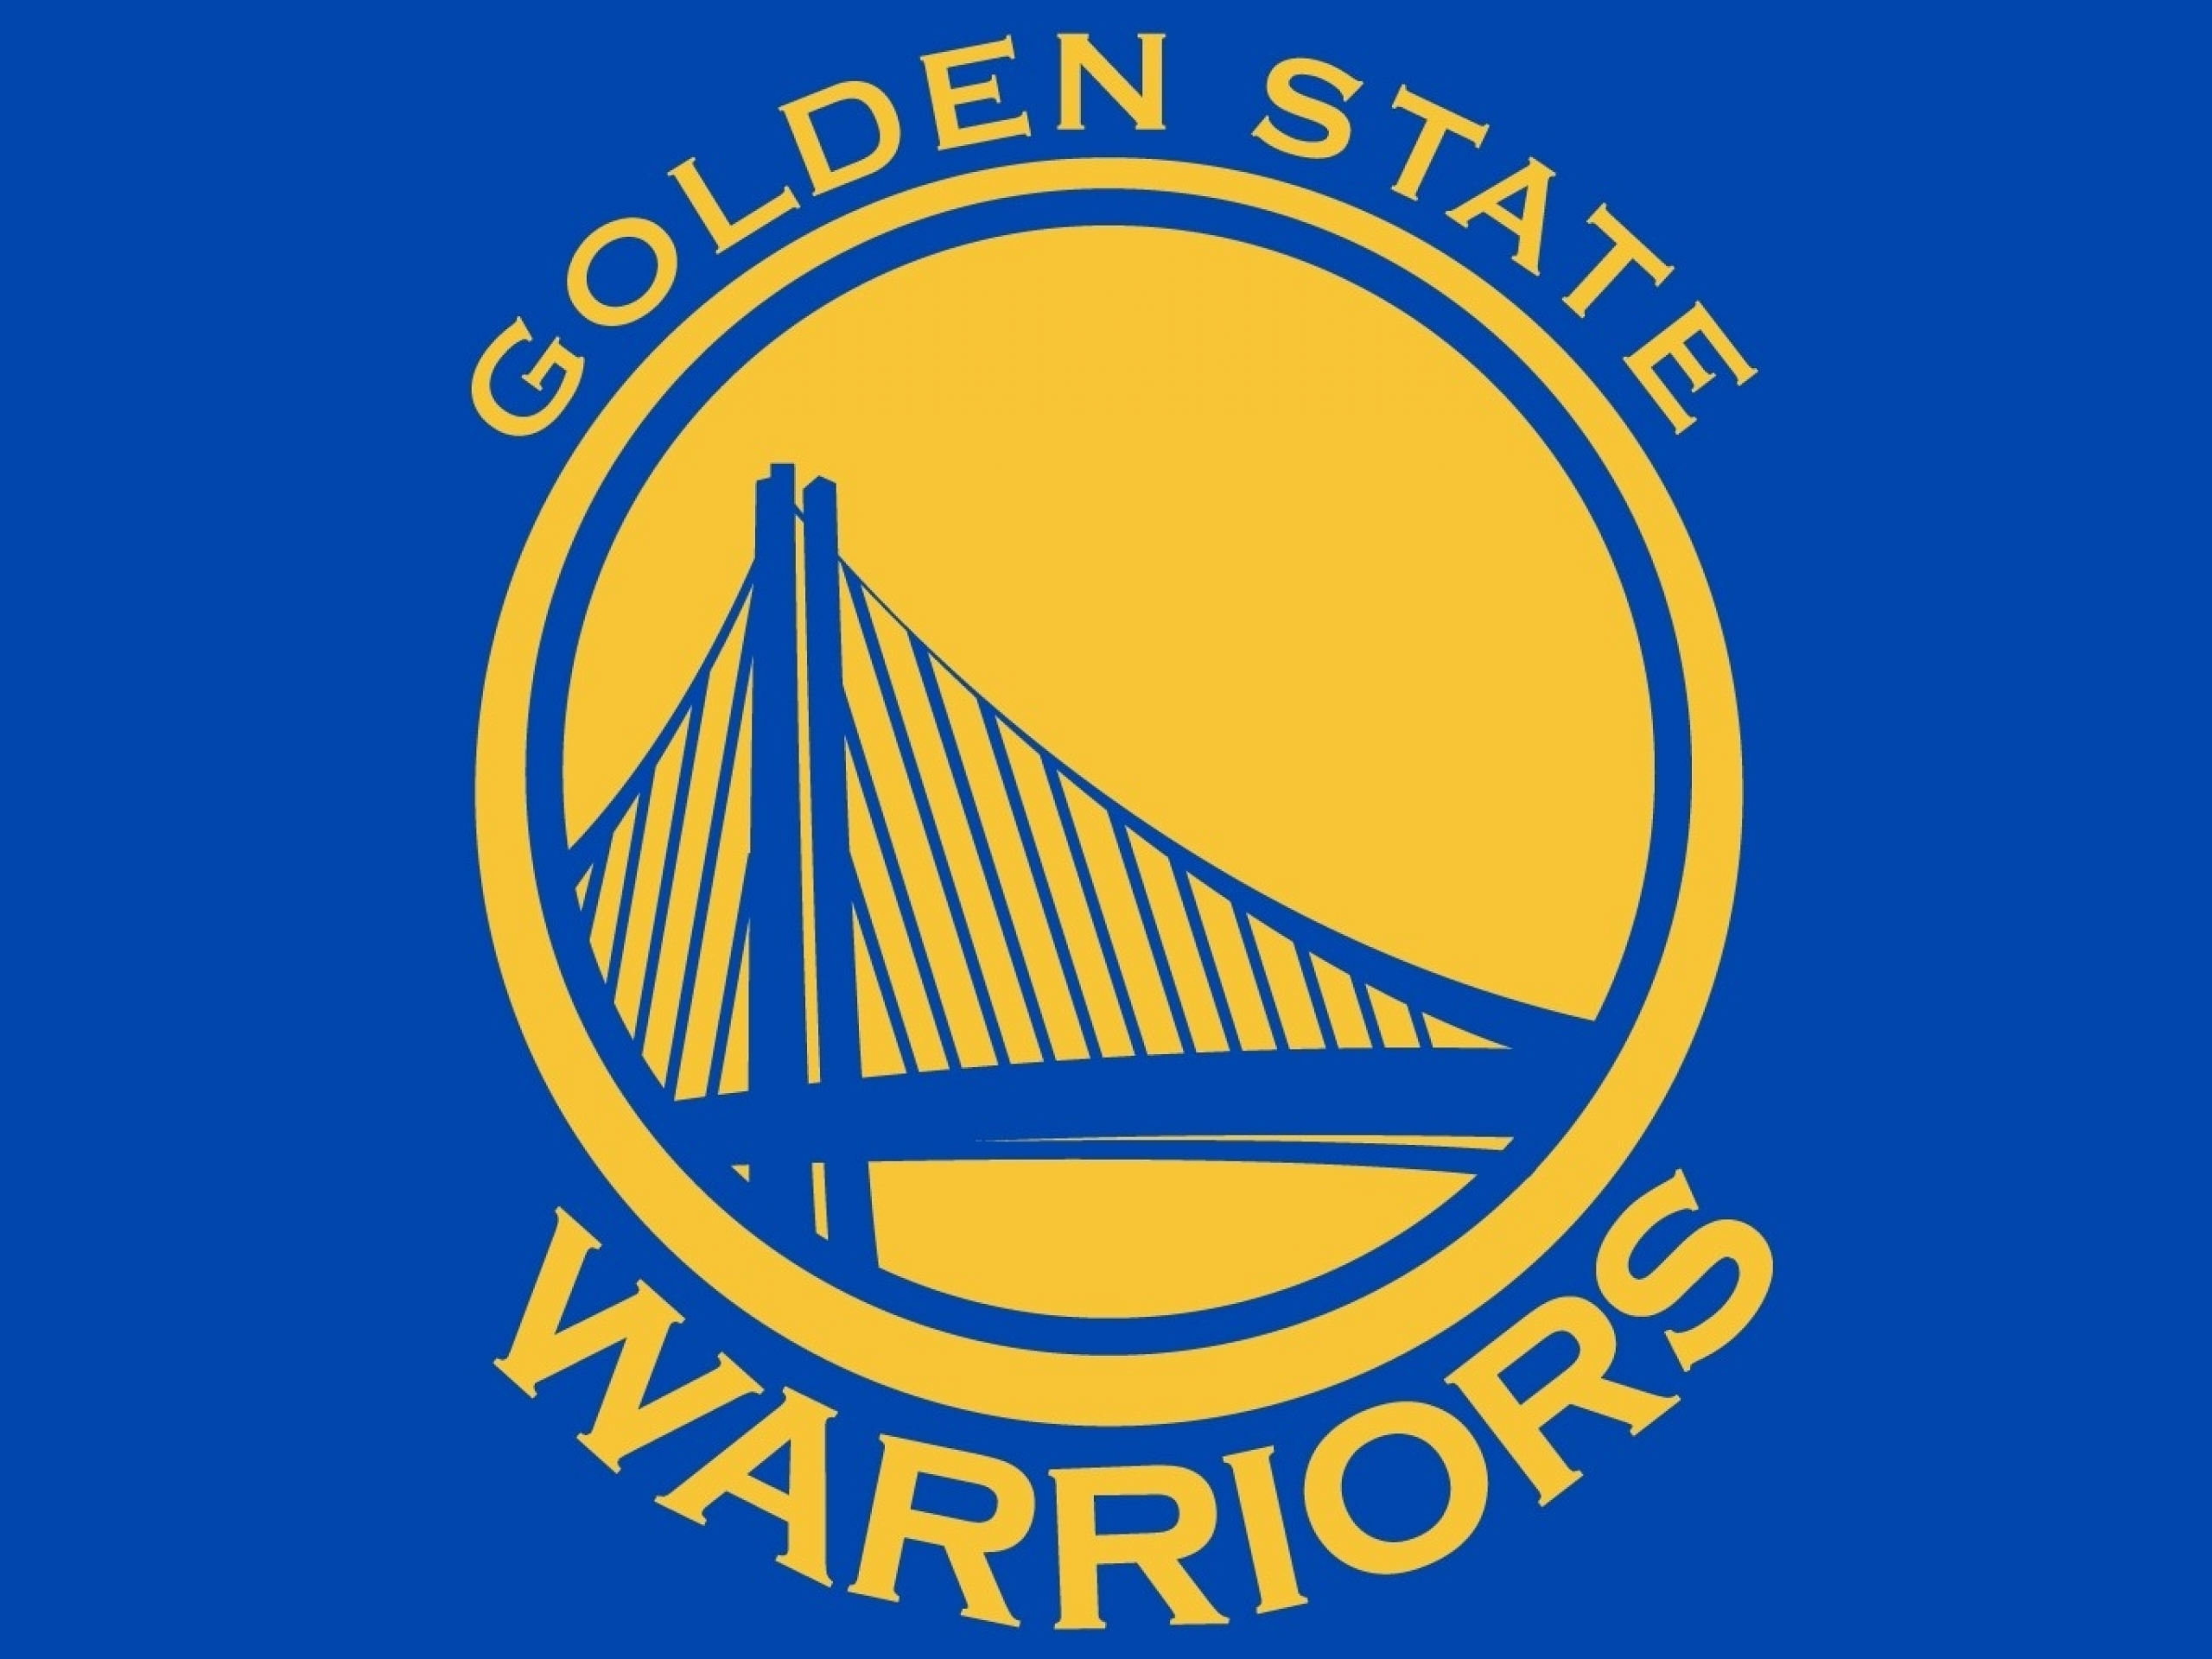 GOLDEN STATE WARRIORS nba basketball 14 wallpaper background by 2560x1920